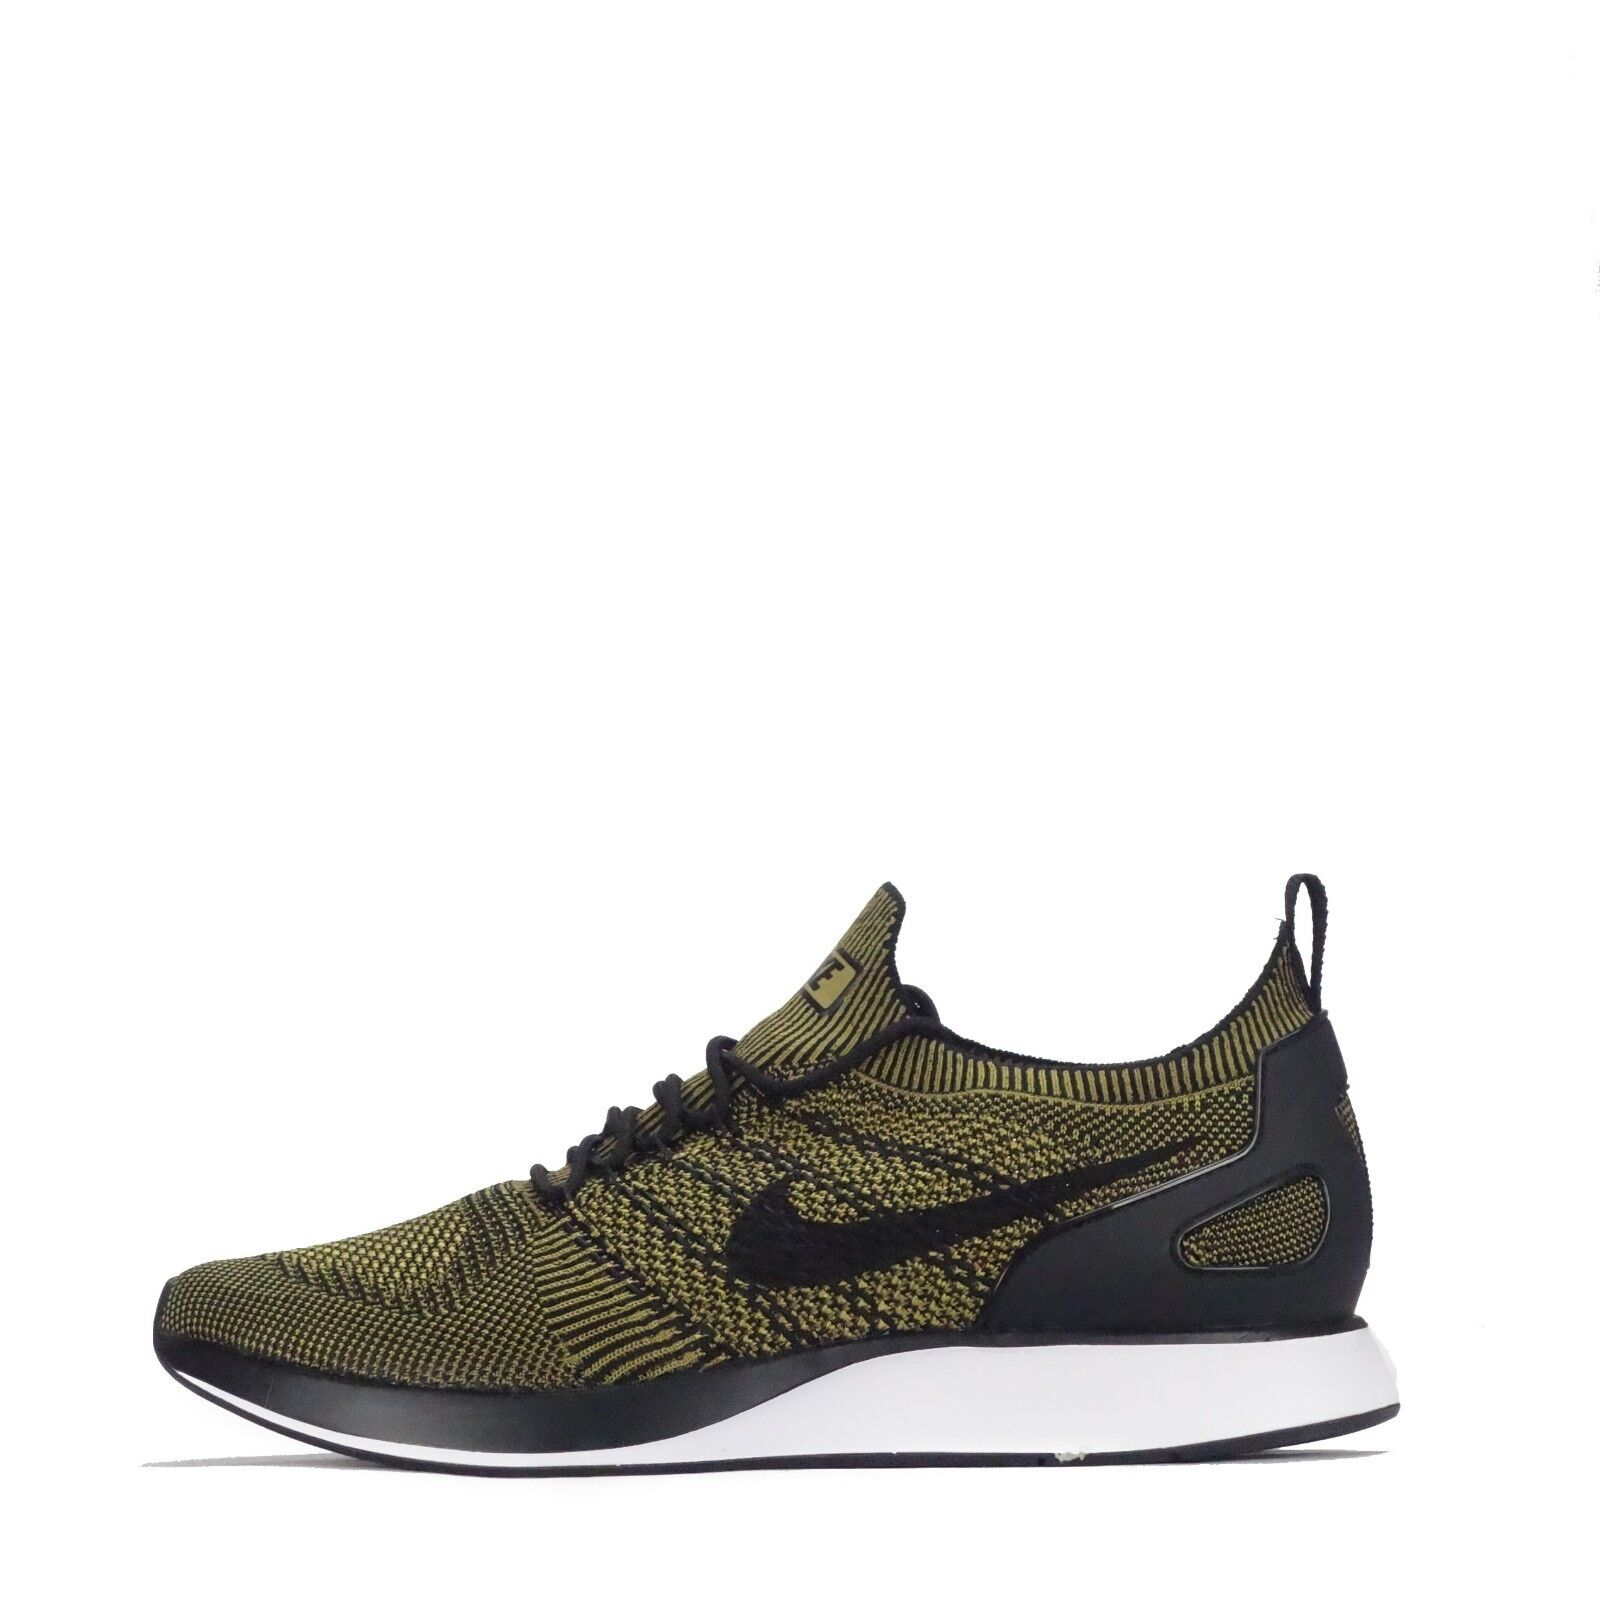 Nike Air Zoom Mariah Flyknit Racer Mens Running Trainers Black/ Desert Moss Seasonal price cuts, discount benefits